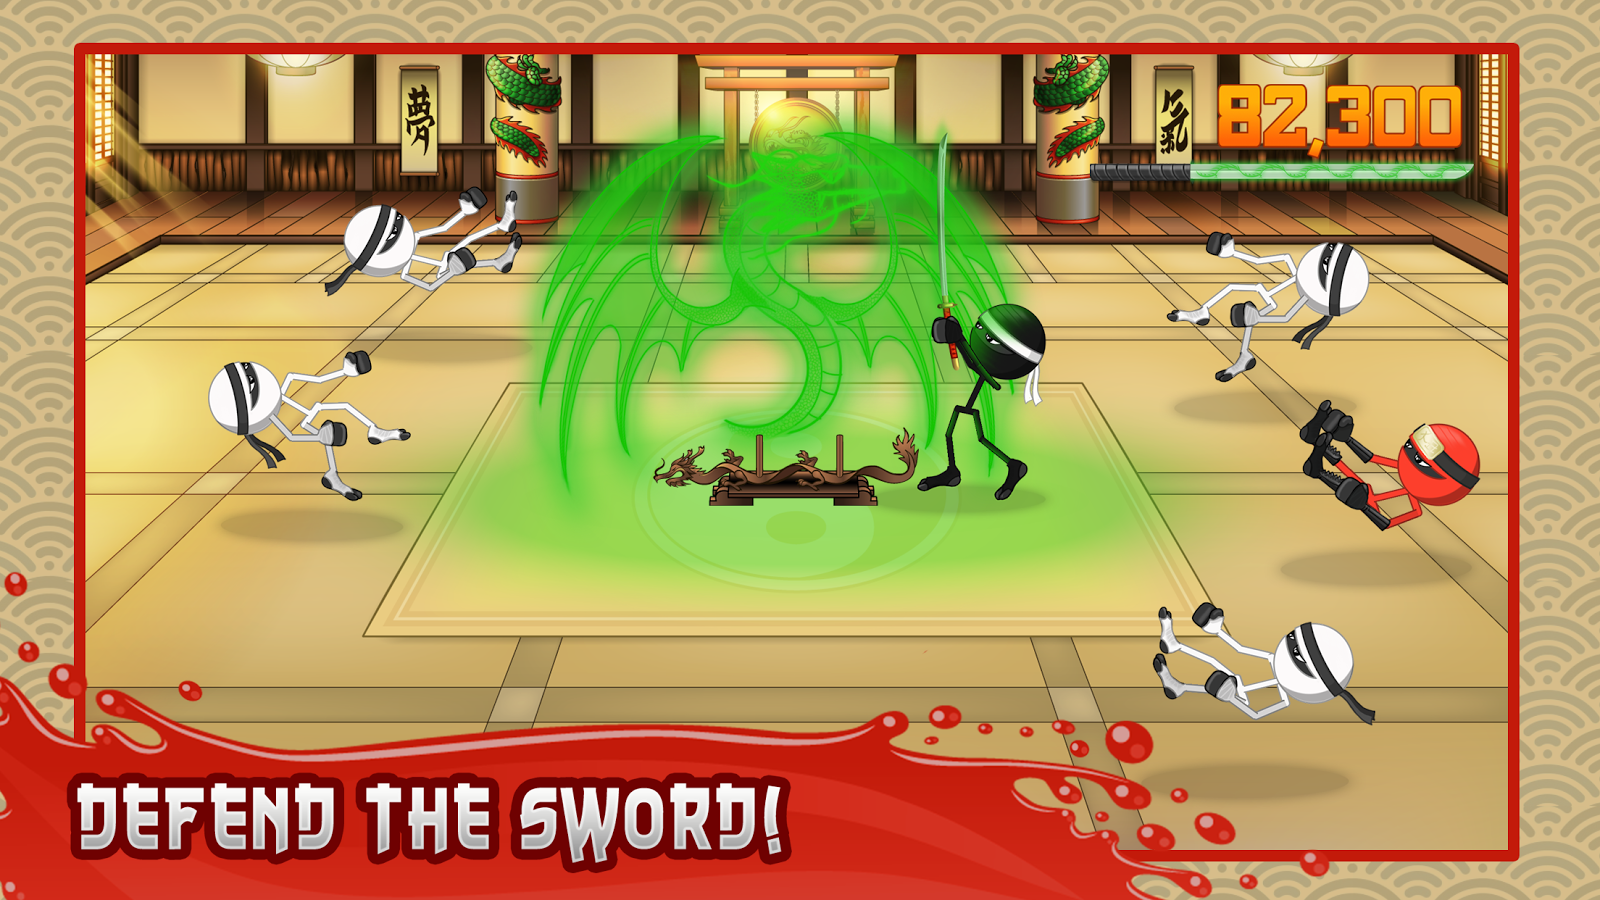 Stickninja Smash Screenshot 3